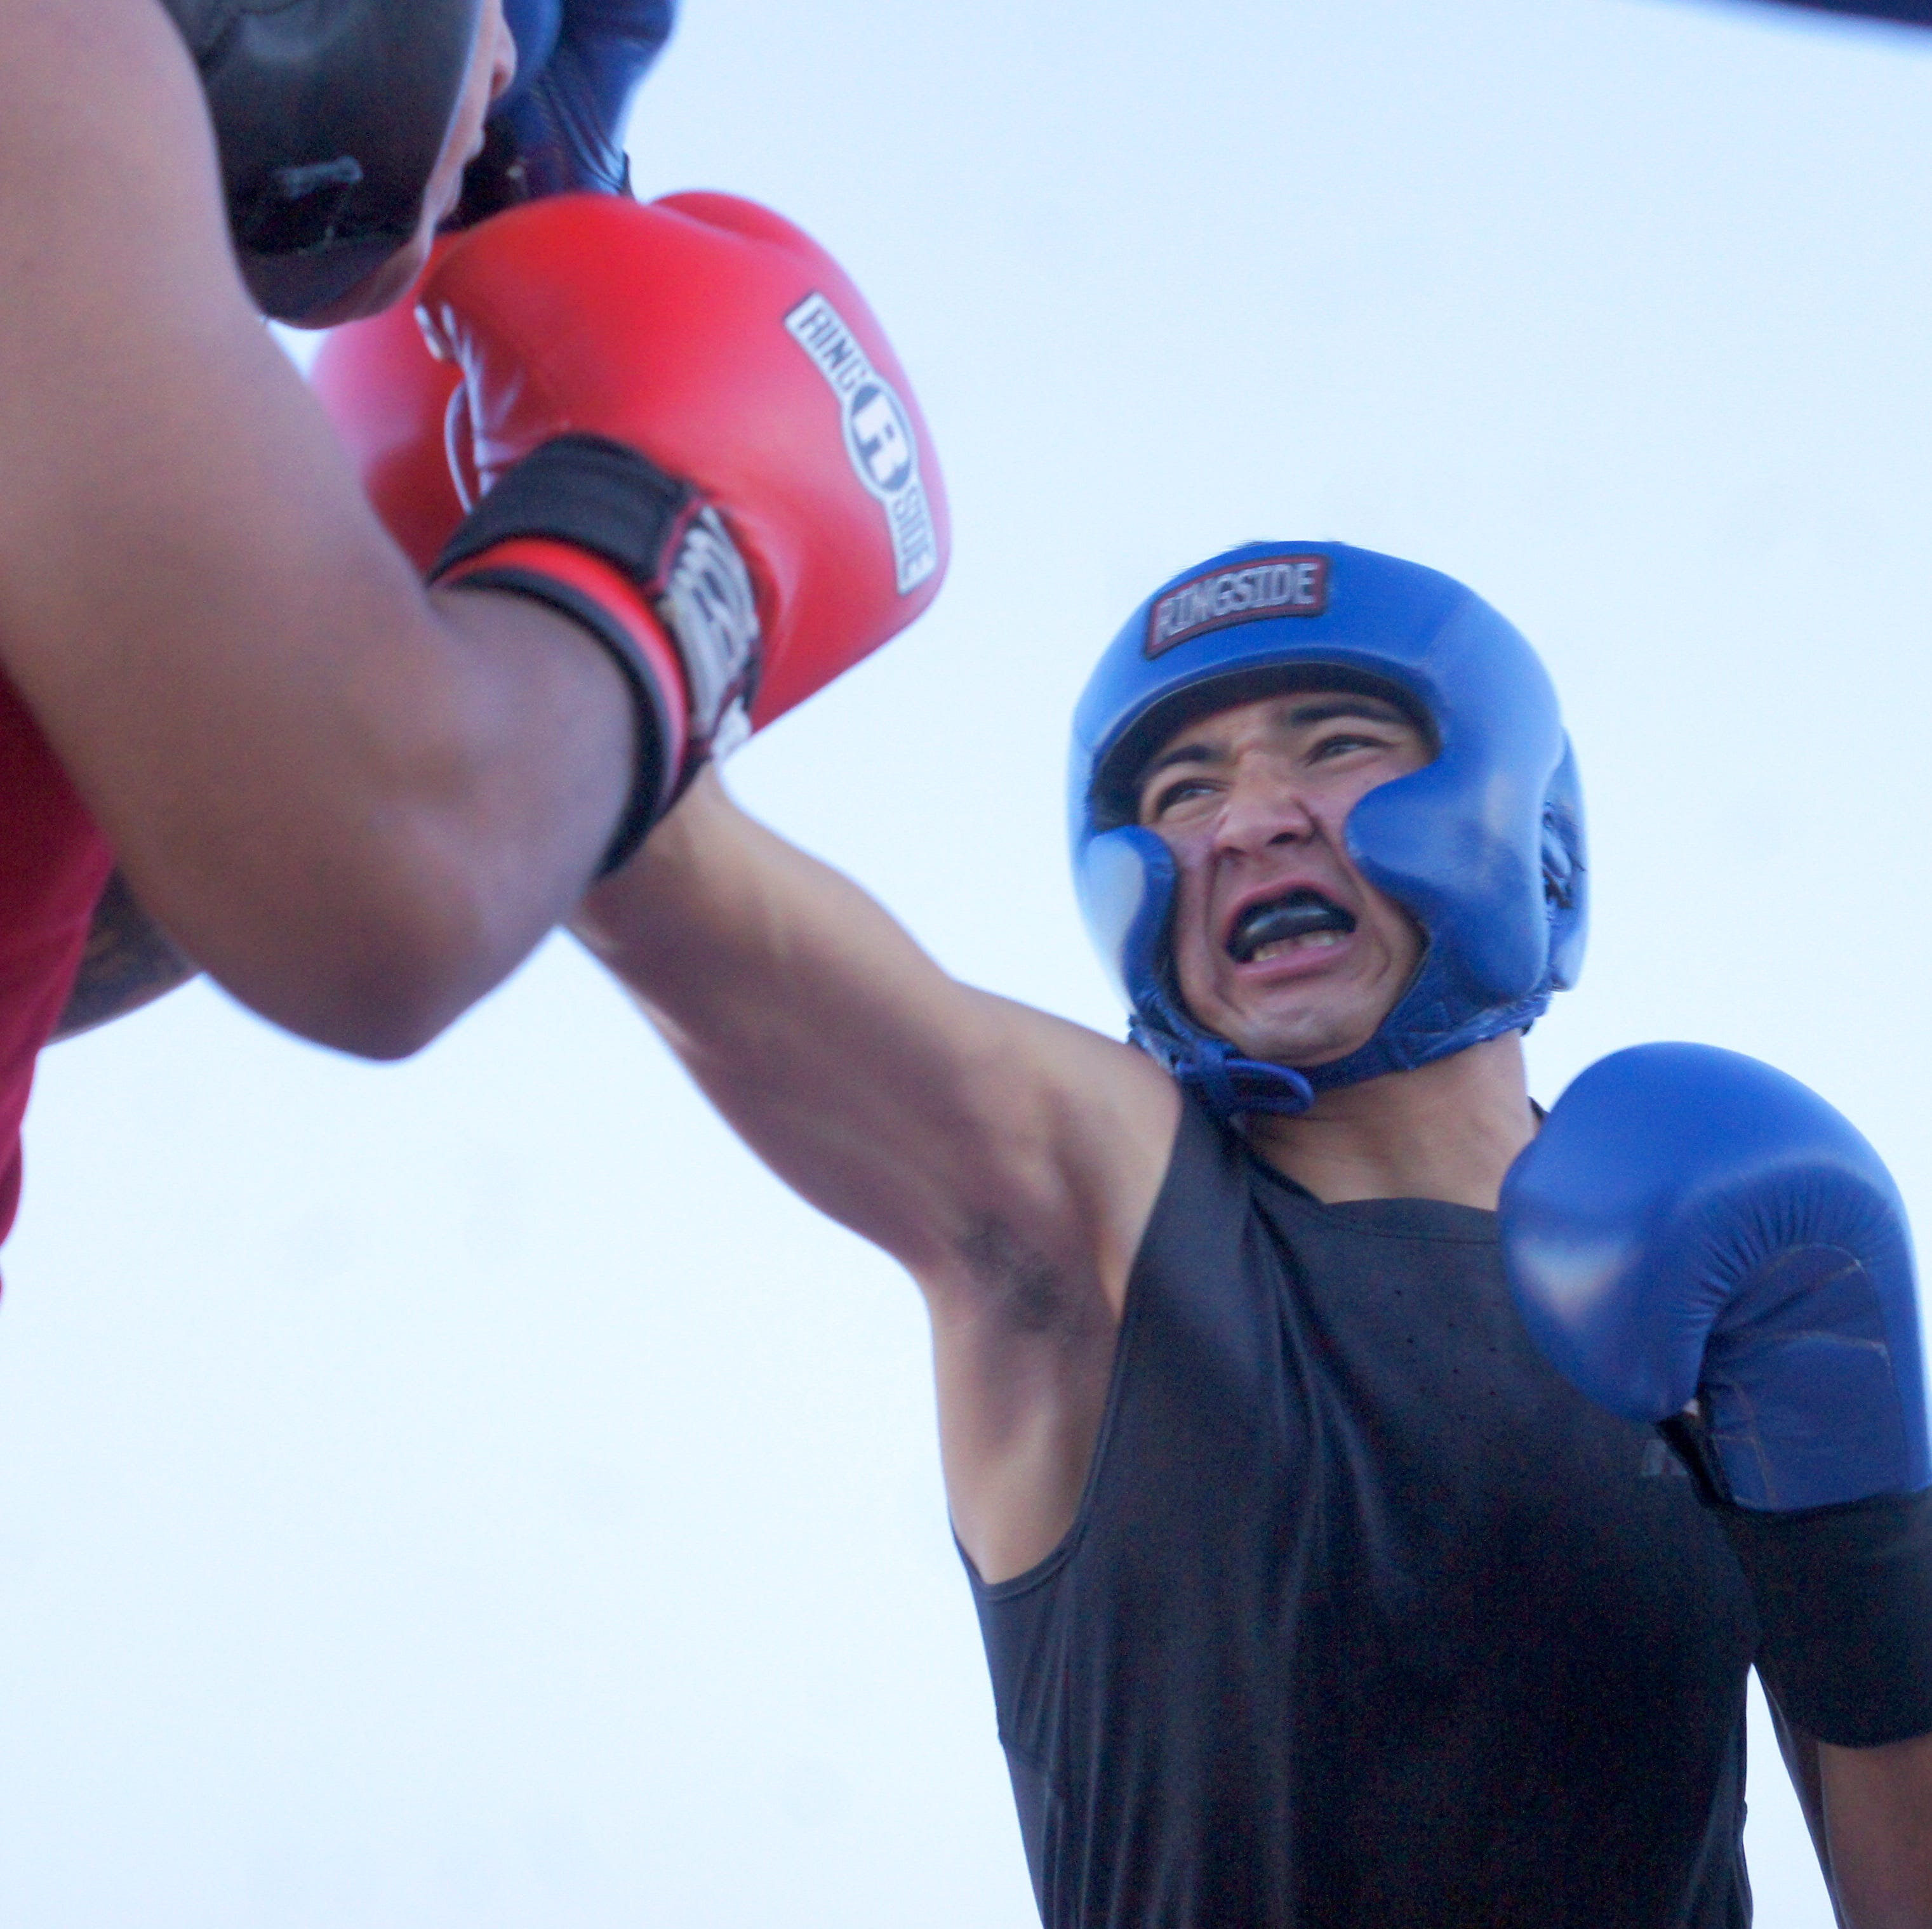 Christian Lopez, right, scored a unanimous decision and registered two standing eight counts in his amateur boxing debut at the Fairground Throw-Down boxing event on Saturday at the Southwestern New Mexico State Fair in Deming, NM.